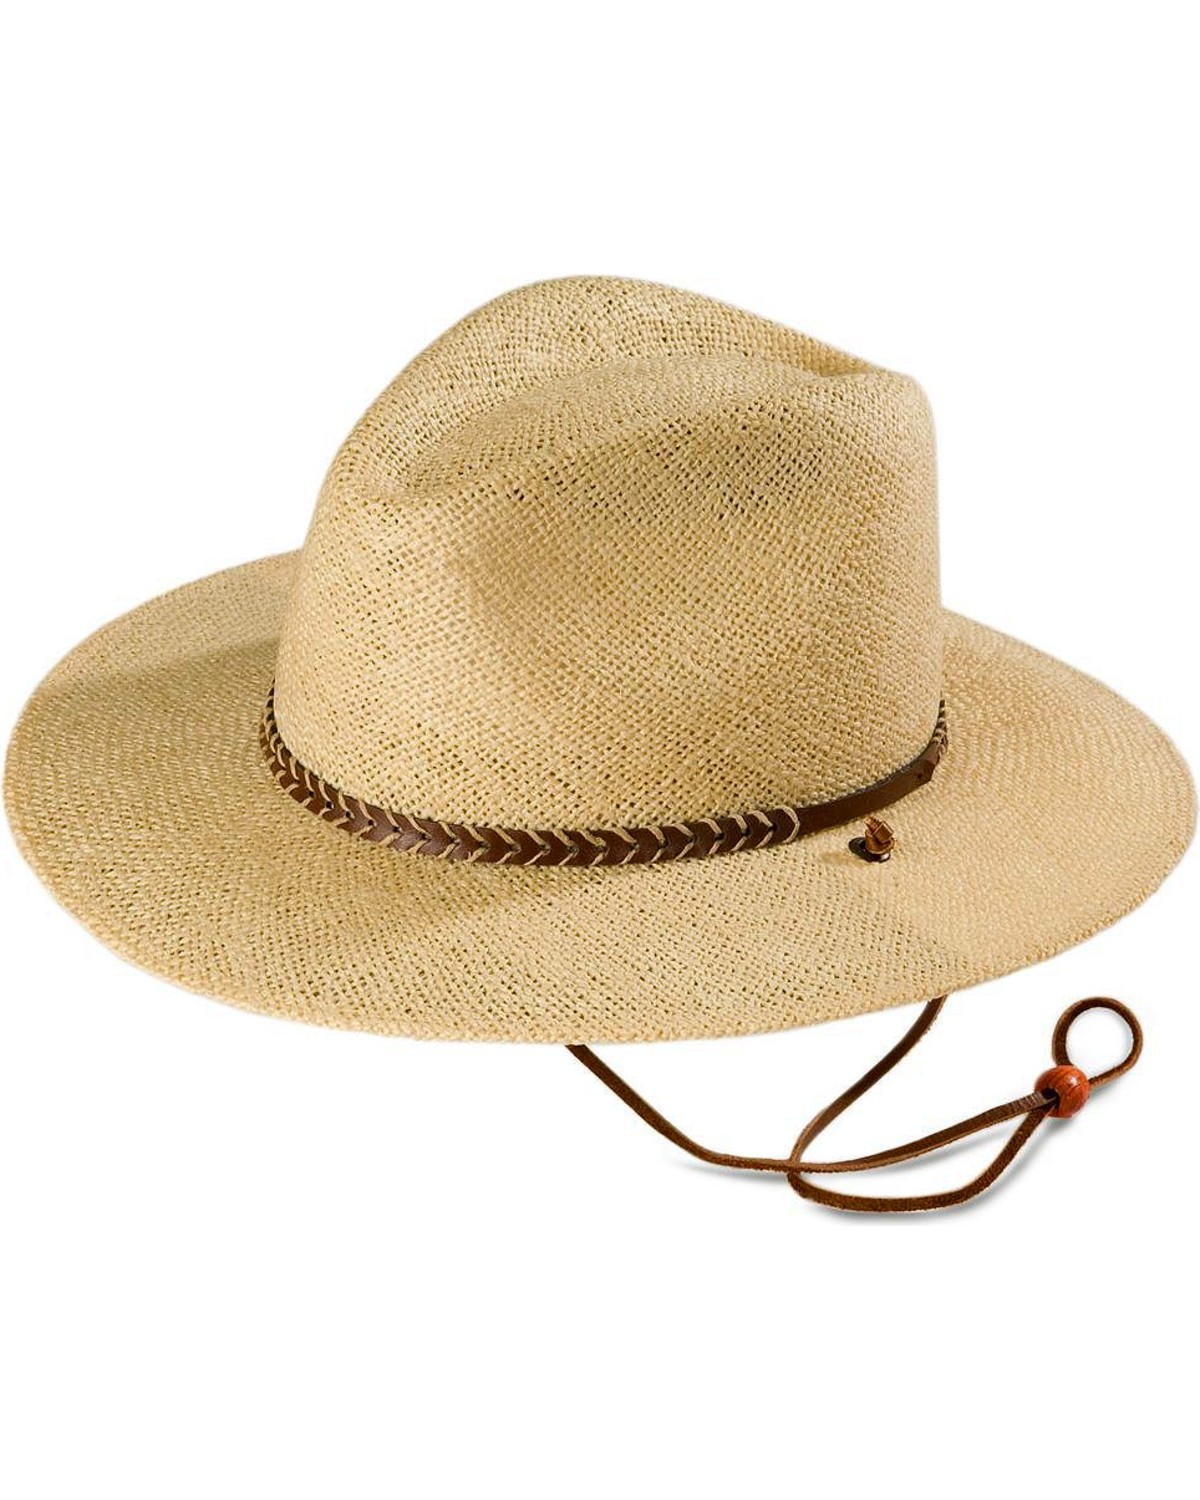 Brief Details and Information about Straw Hats, How to Wear and How to Buy According to Your Appearance